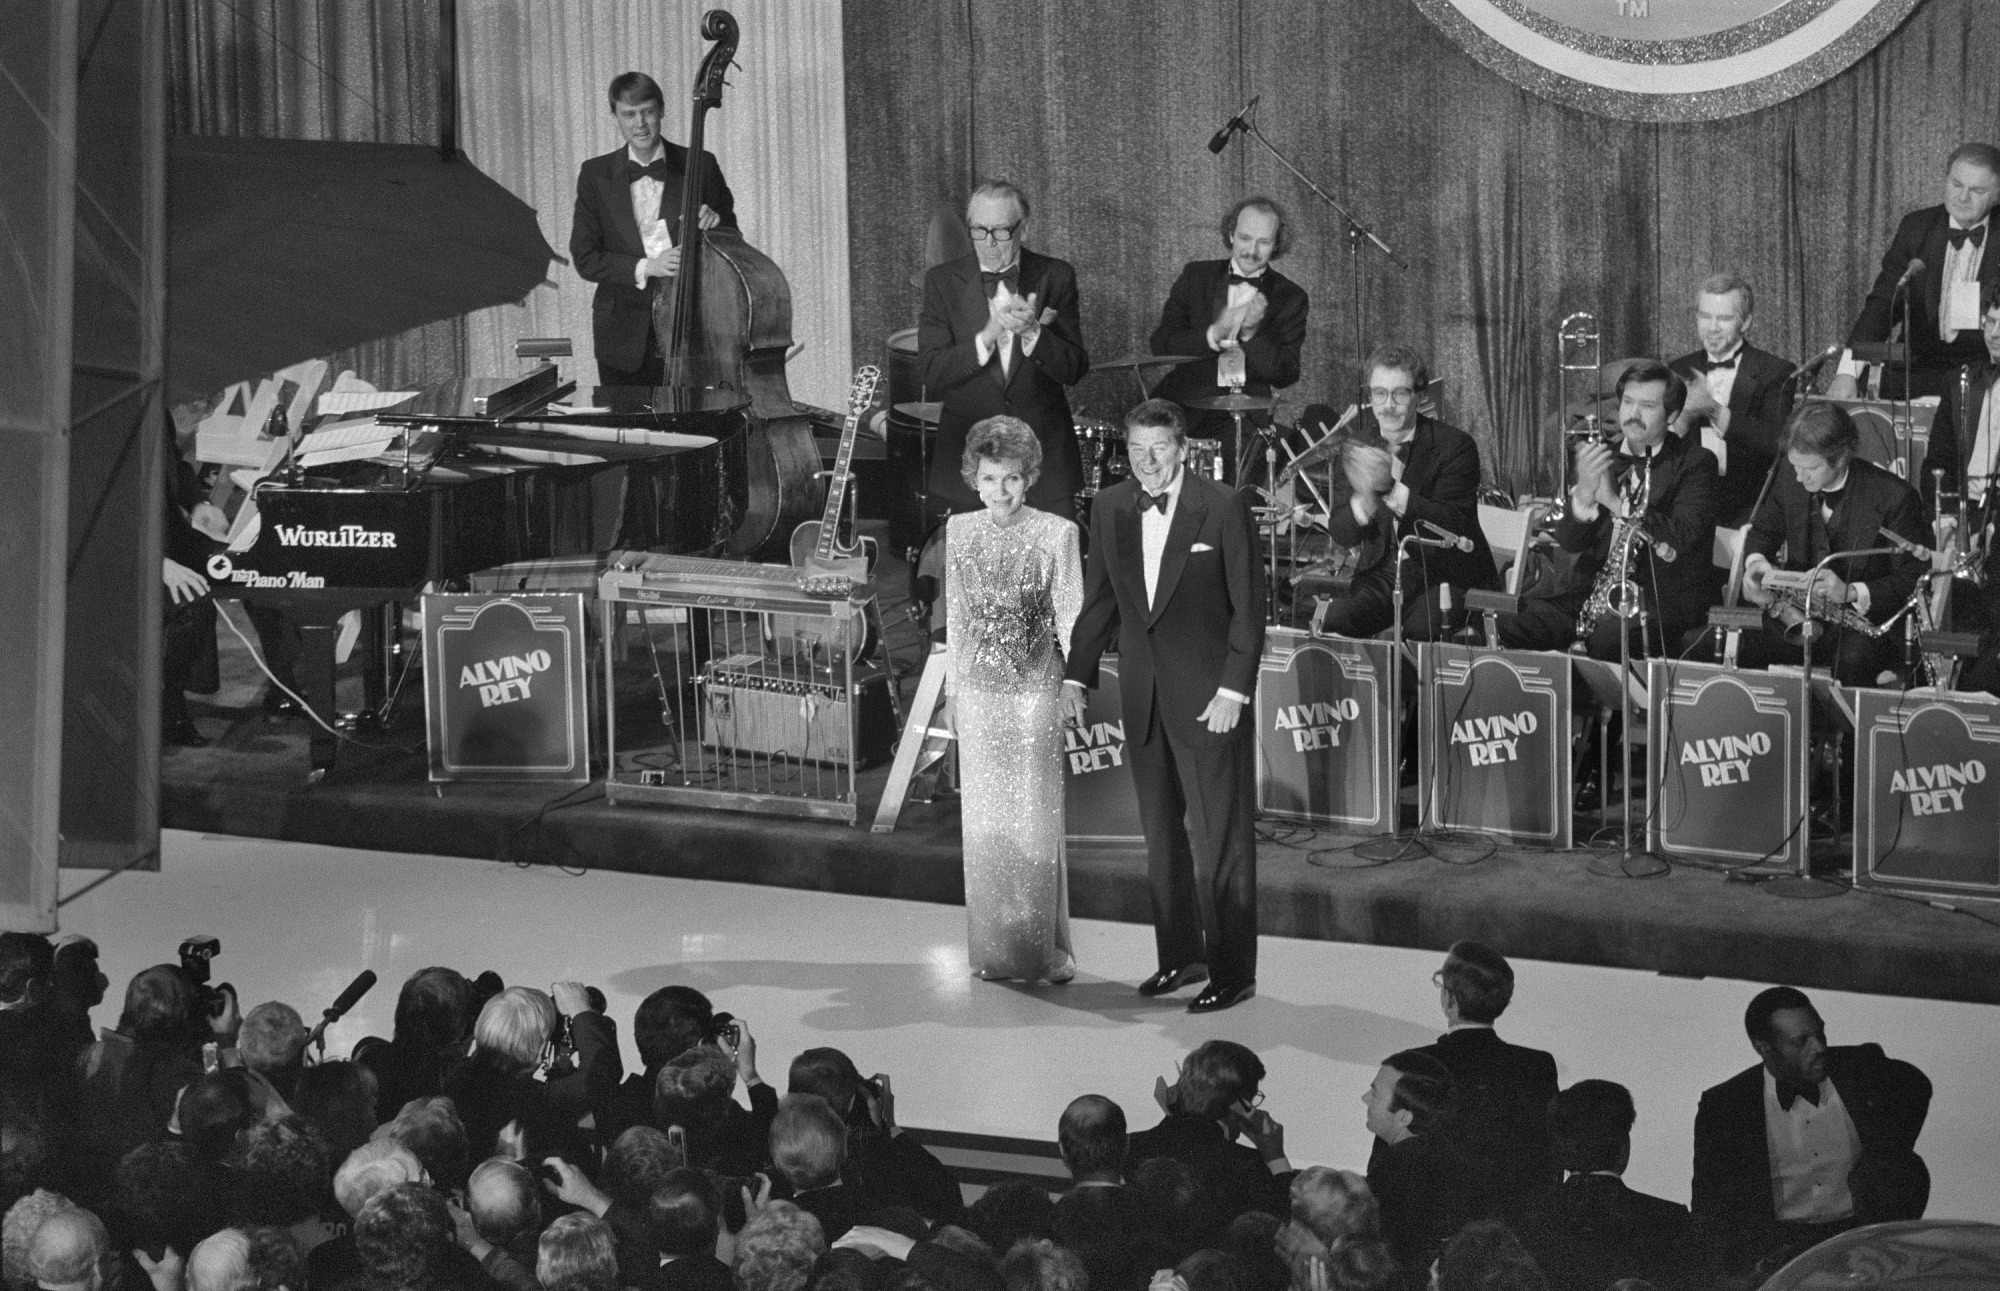 1985 Inaugural Ball: President Ronald Reagan and Mrs. Nancy Reagan in National Air and Space Museum, January 21, 1985